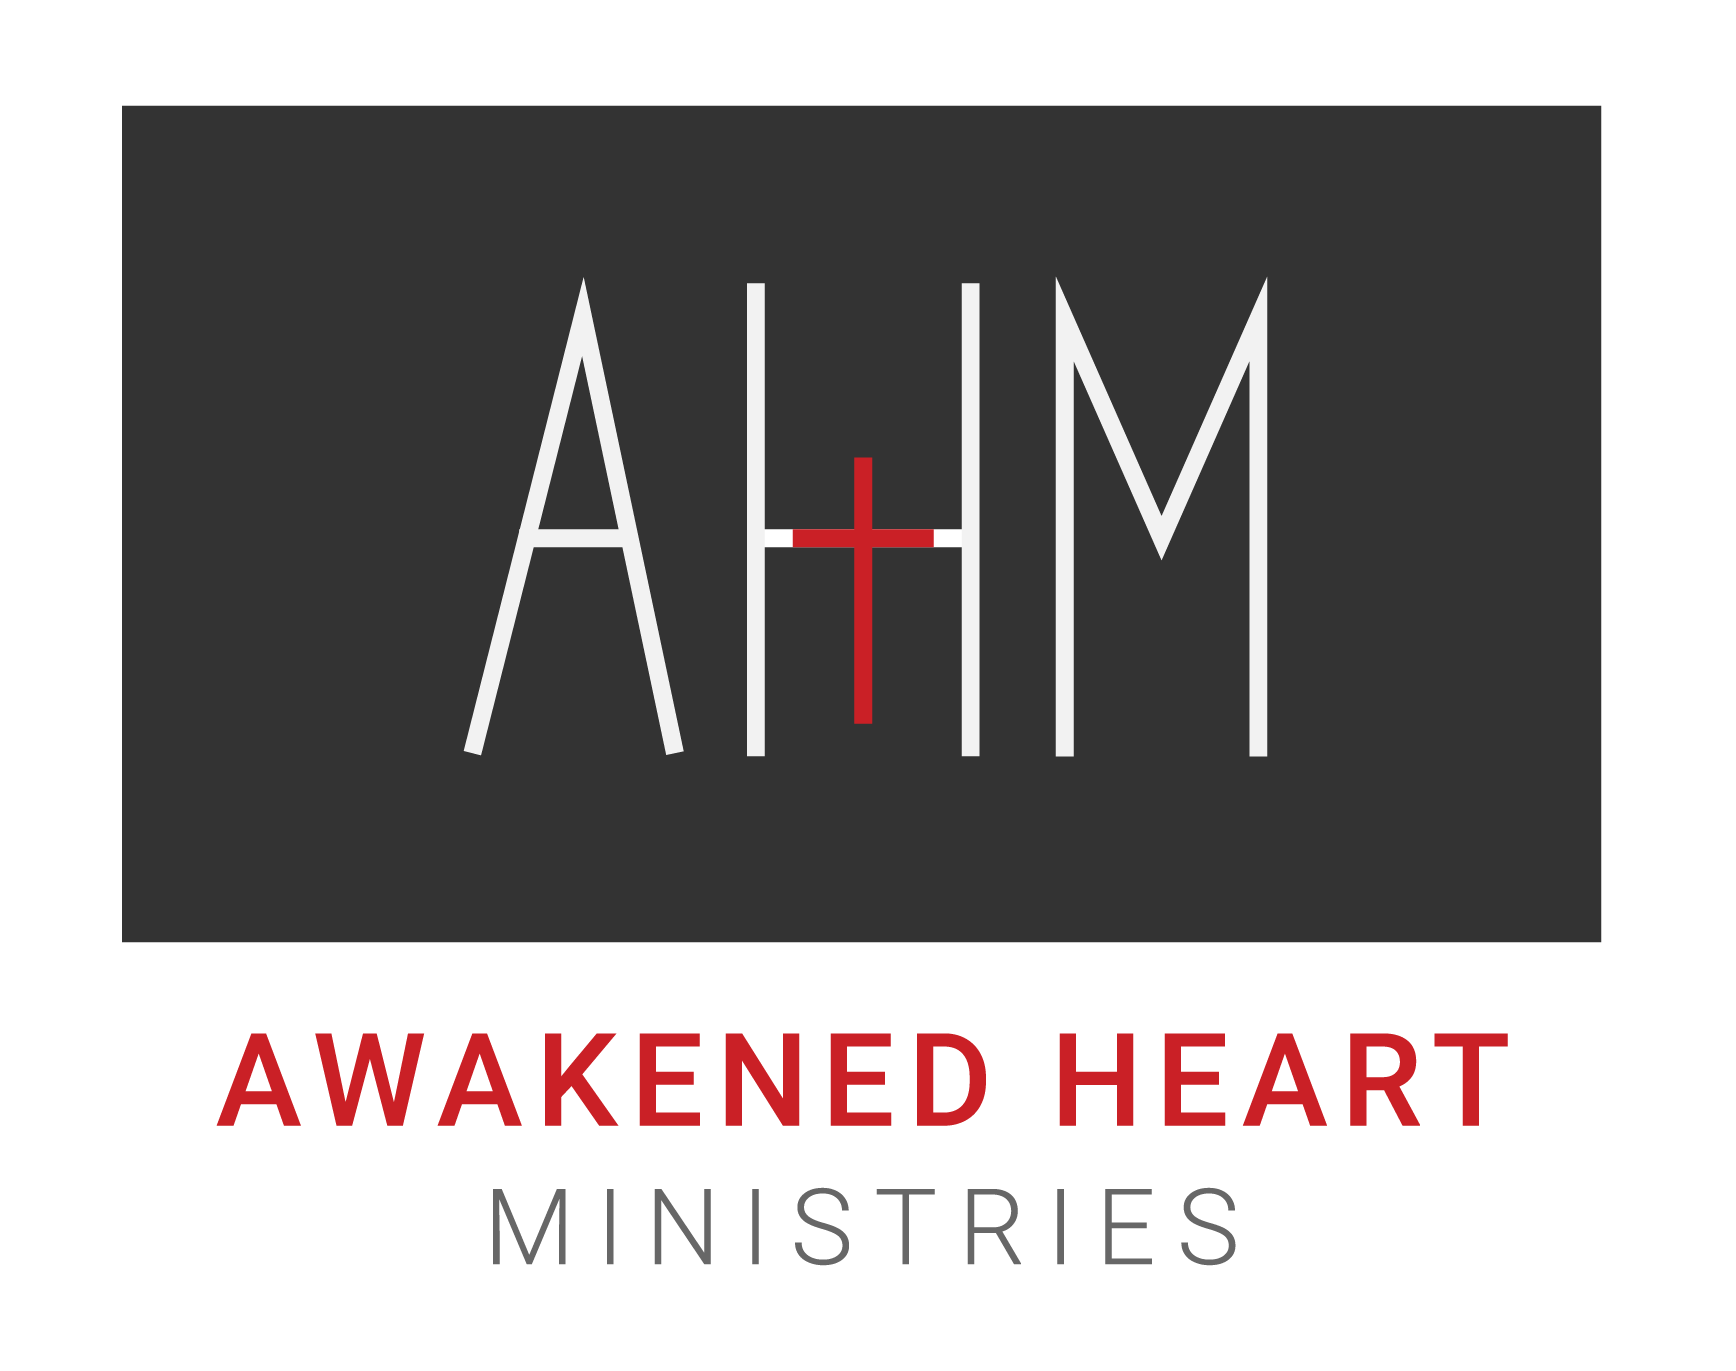 Awakened Heart Ministries